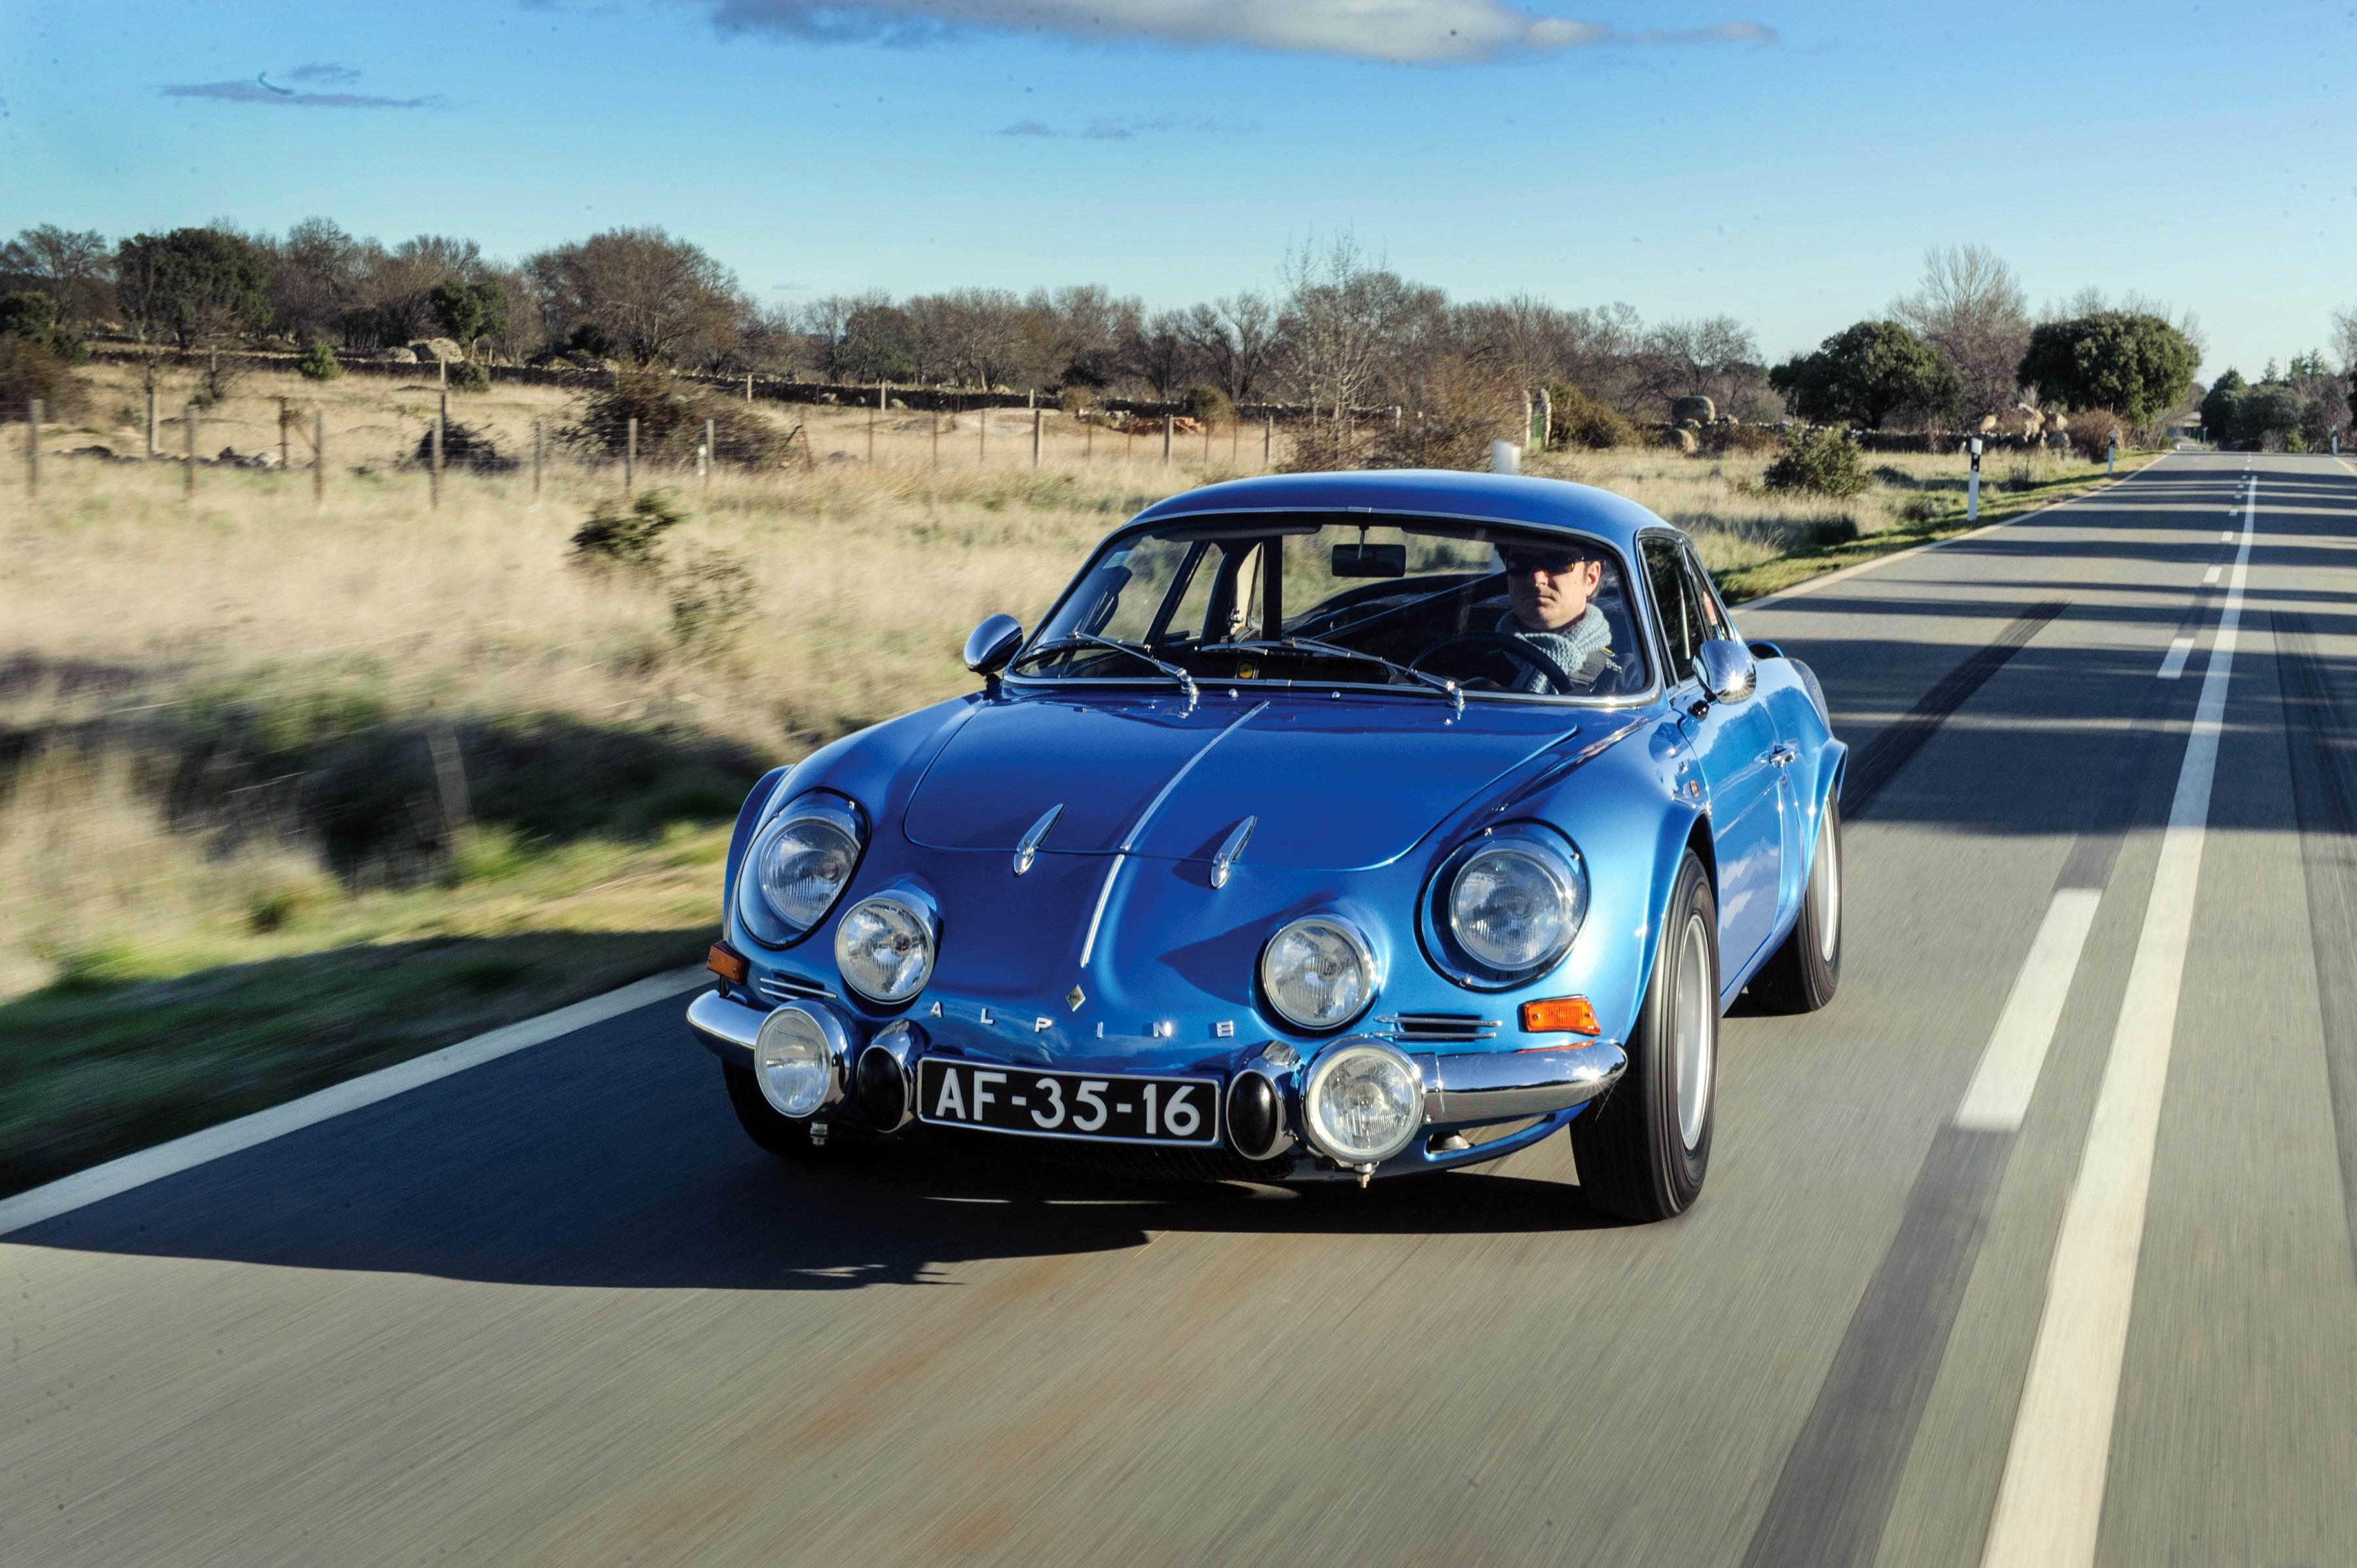 1972 75 renault alpine a110 1600s classic wallpaper 3600x2395 557429 wallpaperup. Black Bedroom Furniture Sets. Home Design Ideas